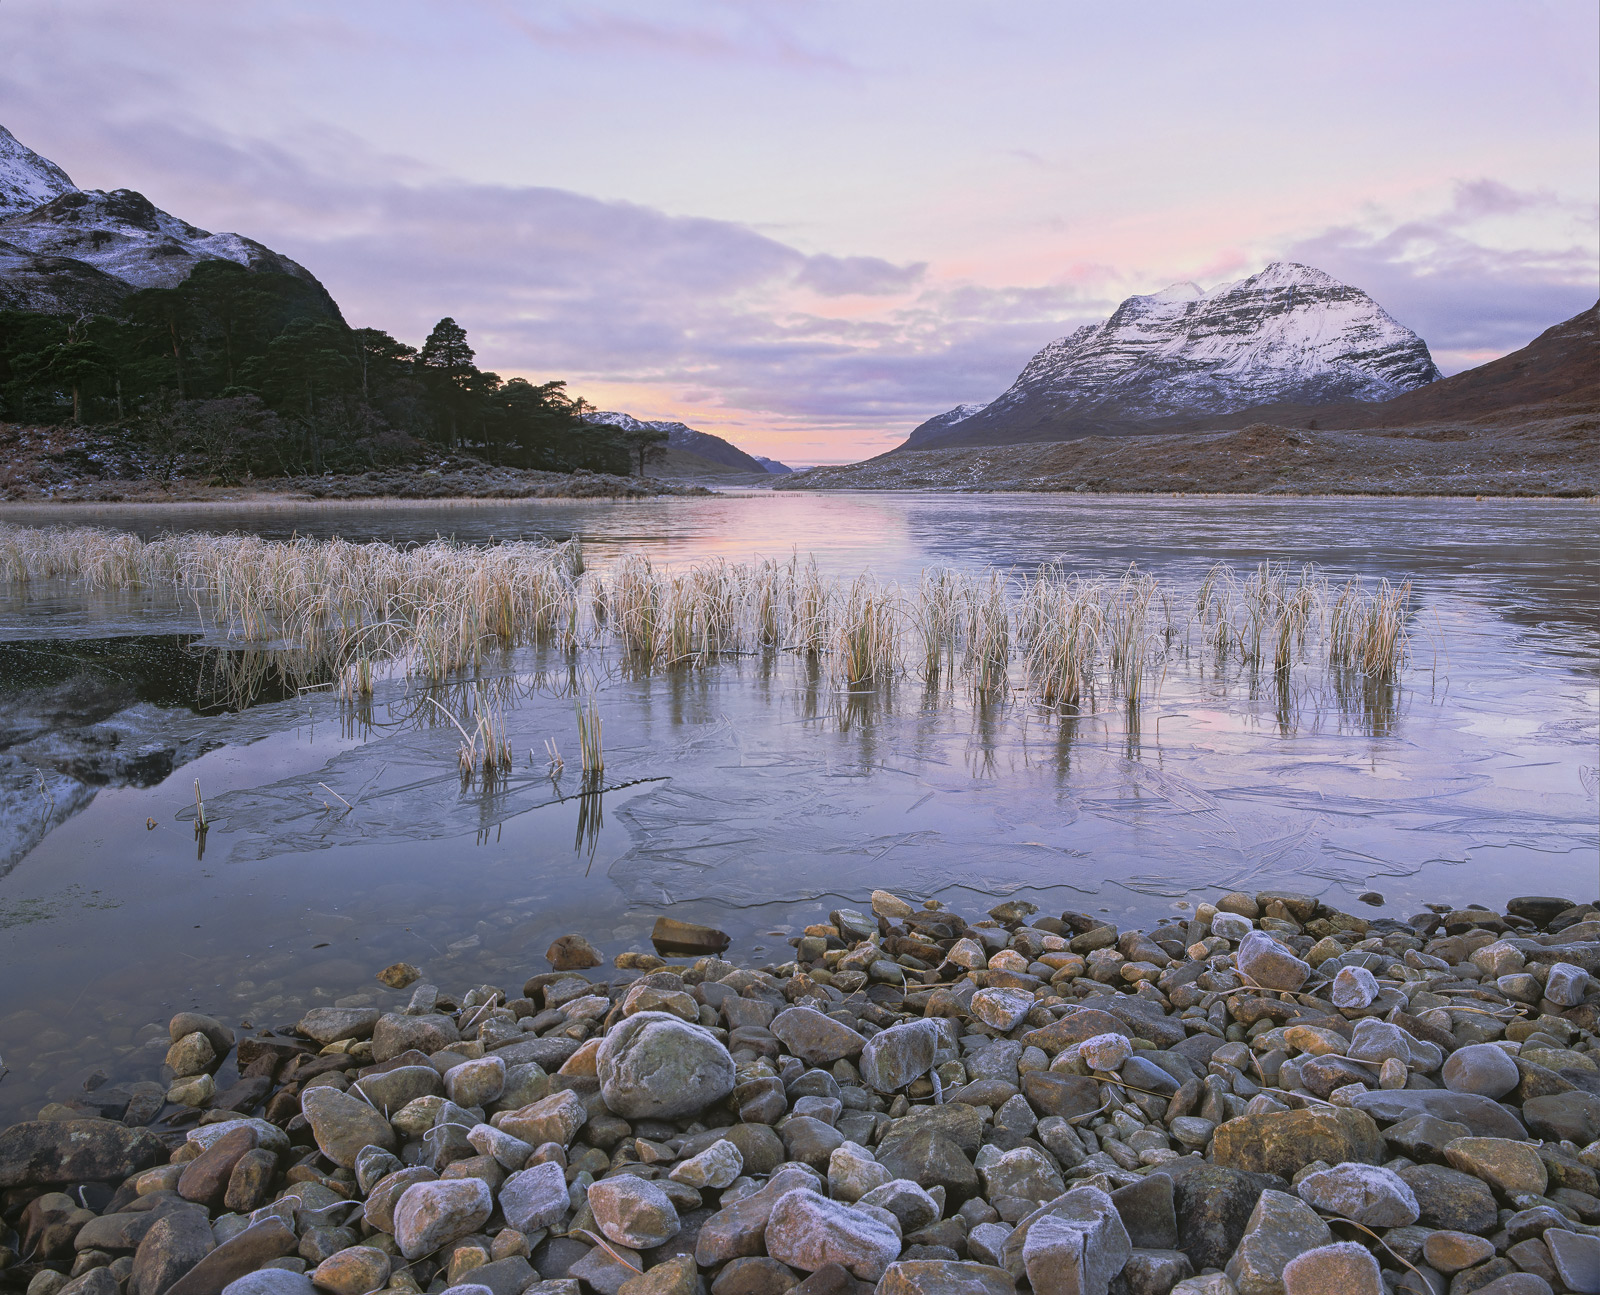 The sun had not yet risen on this very cold and frosty morning at Loch Clair but the ice was expanding as the temperature was...